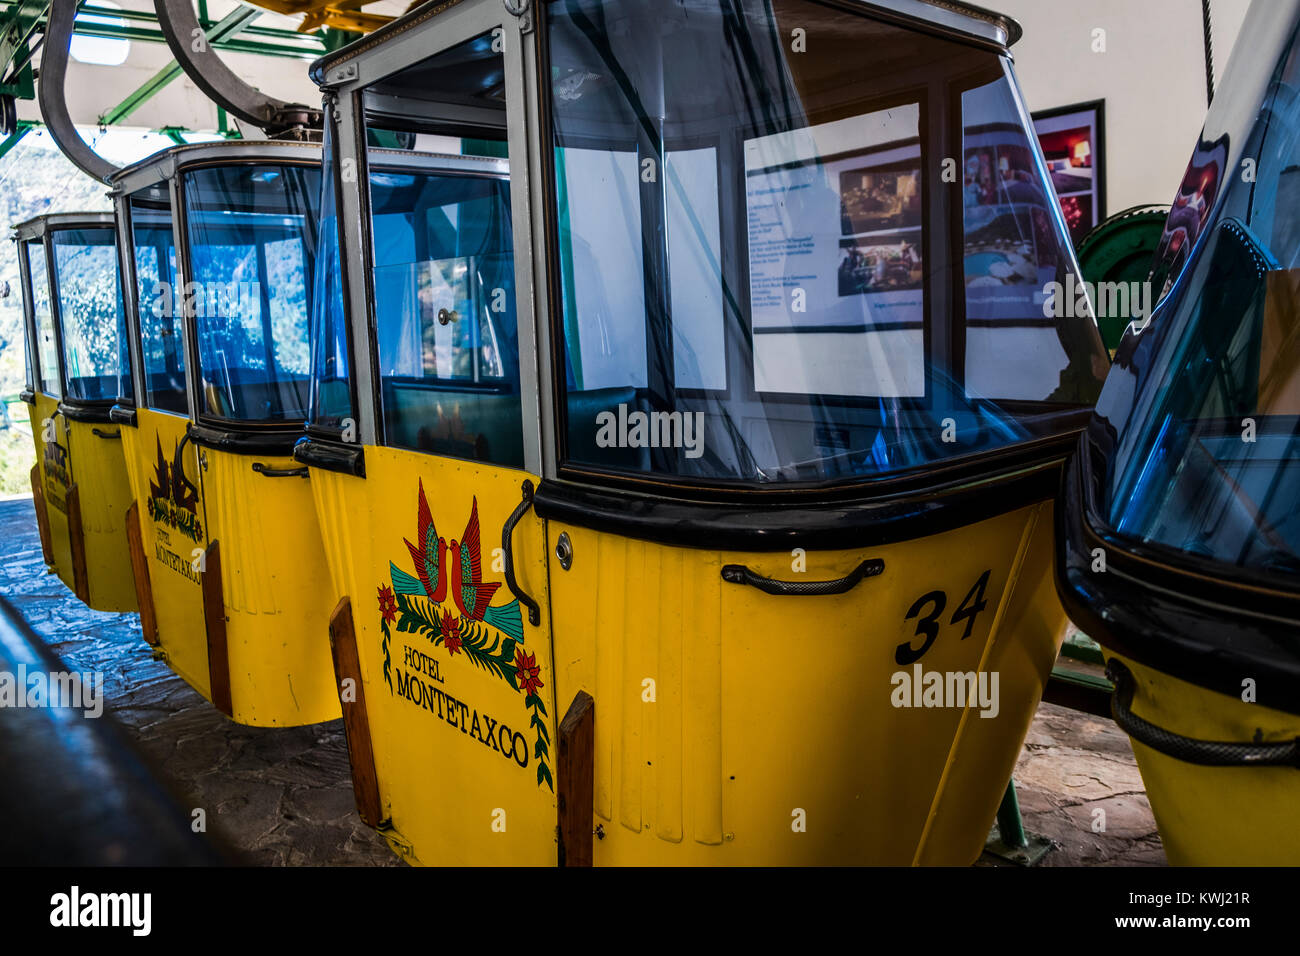 Cable car from Hotel Monte taxco to the town. Taxco, Guerrero, Mexico. - Stock Image